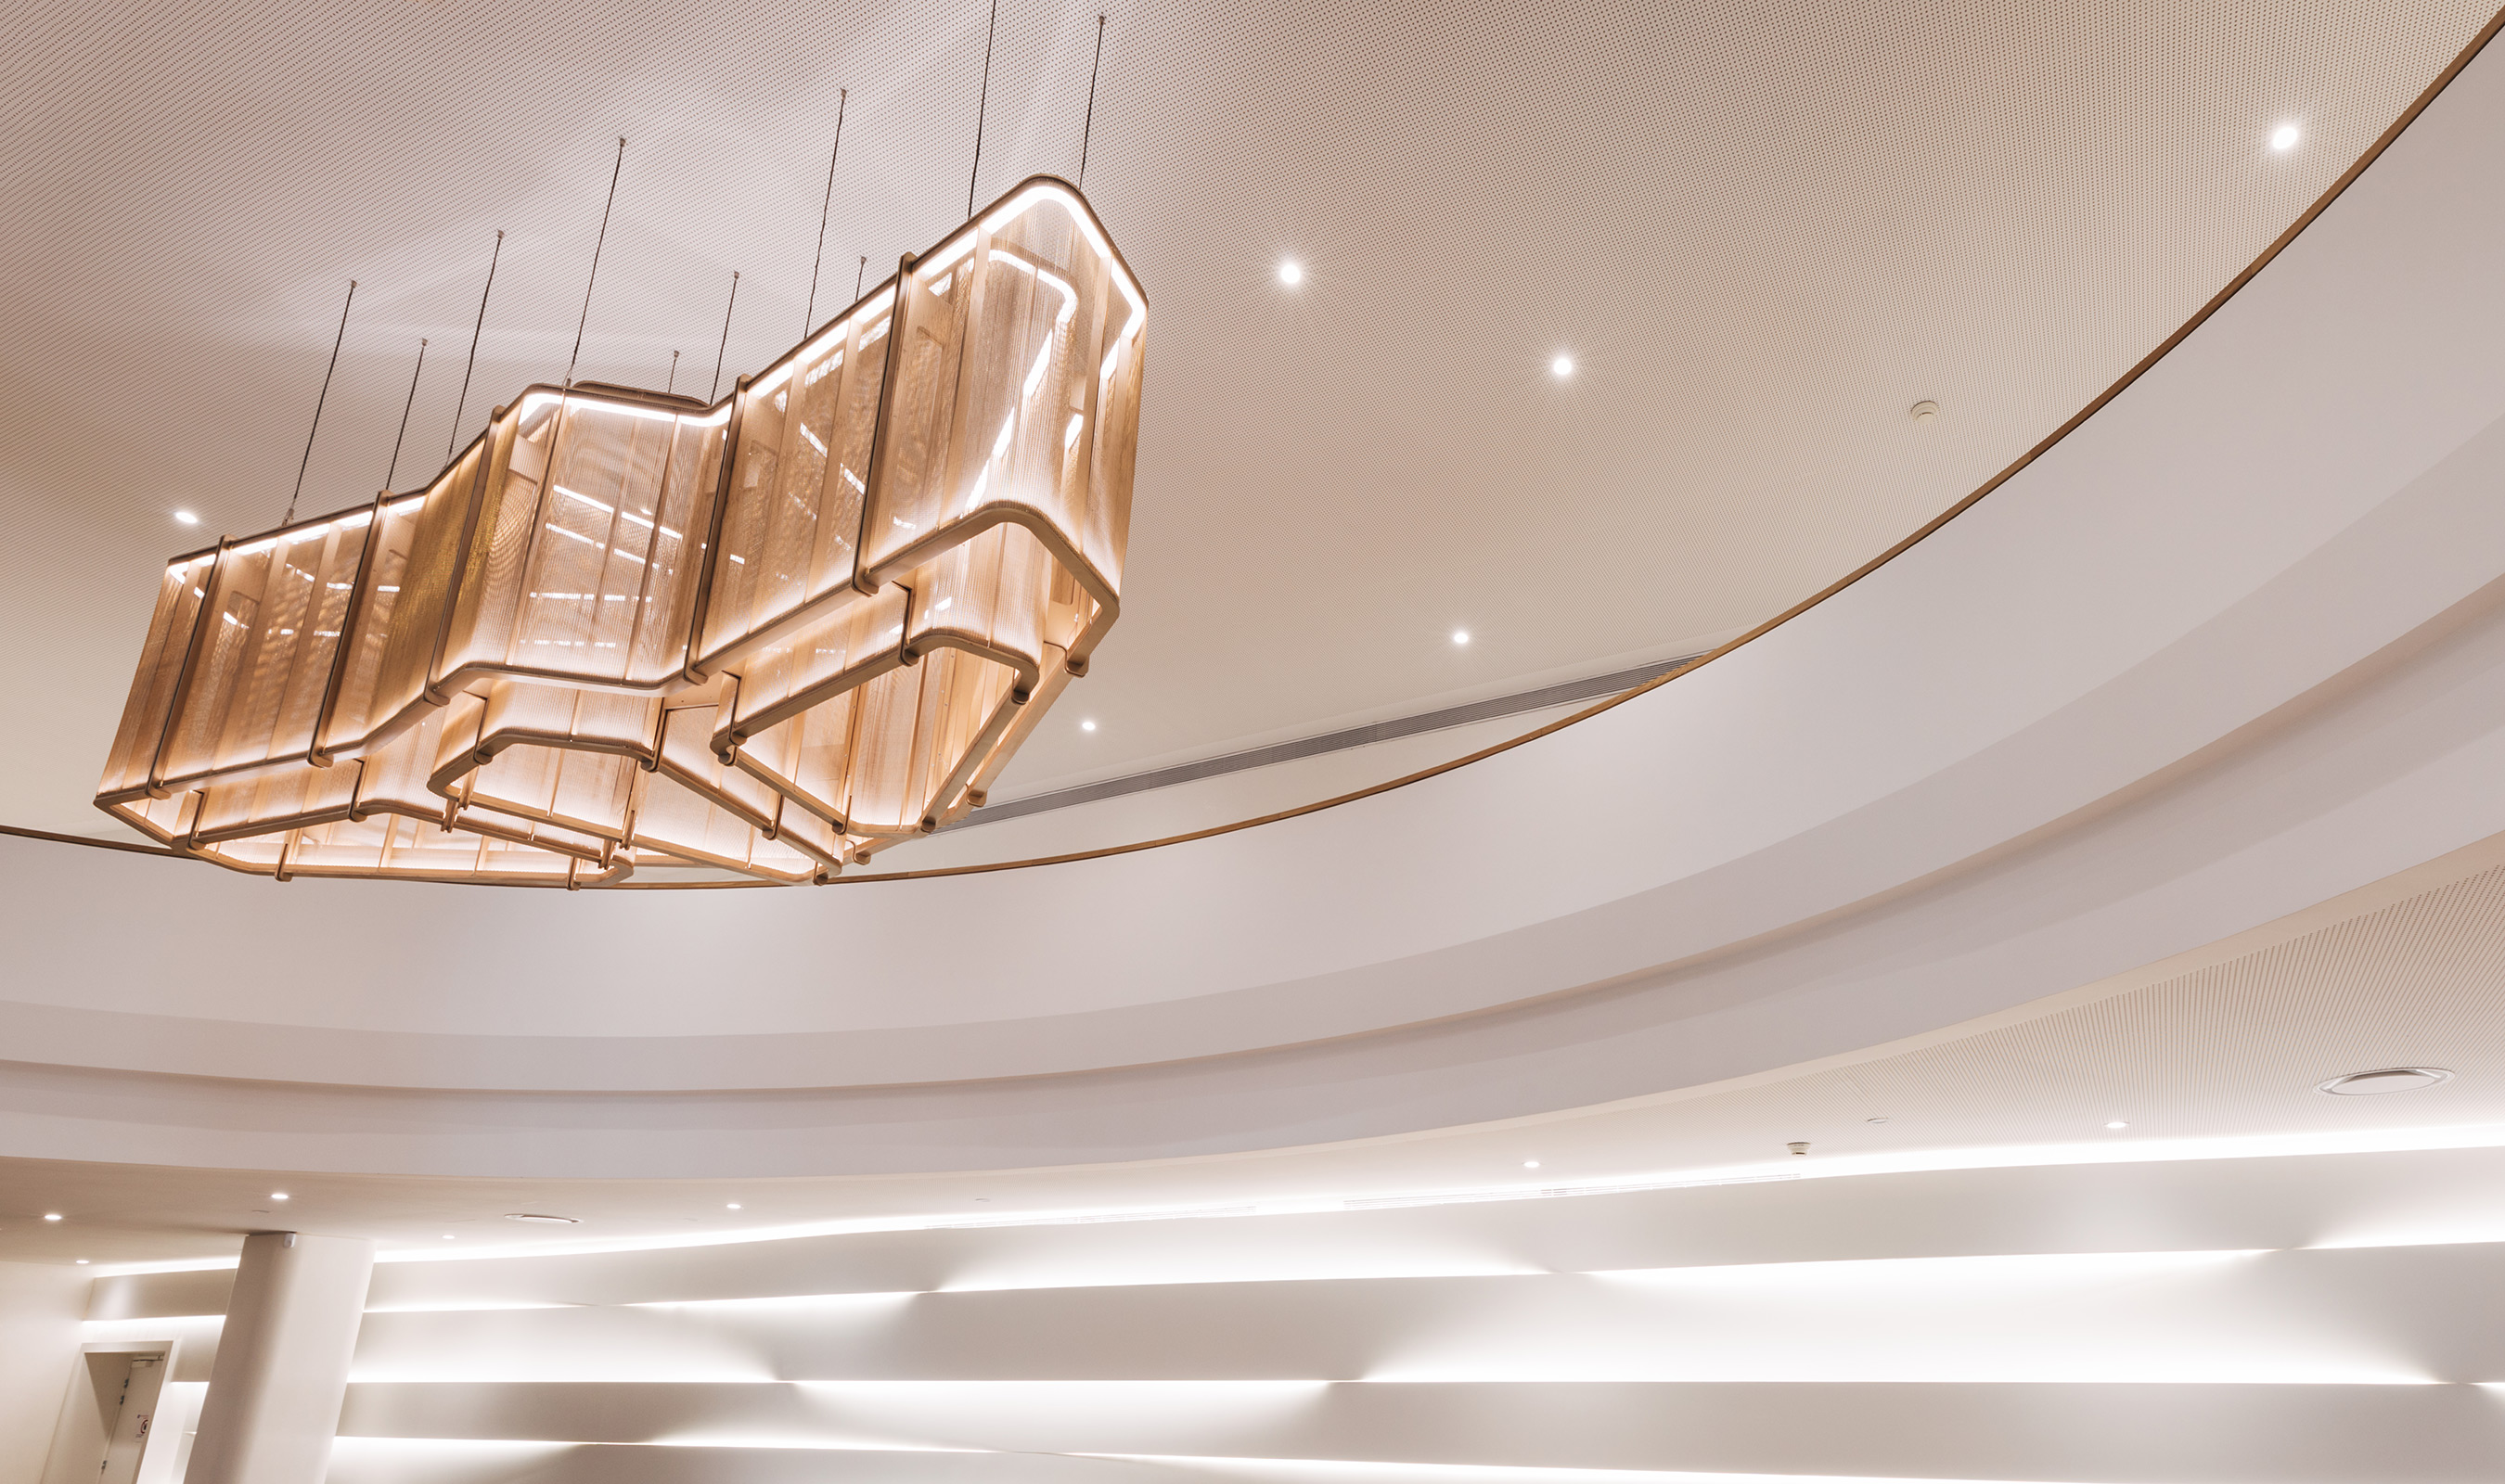 The layers of mesh create an intiriquing pattern for the custom chandelier.